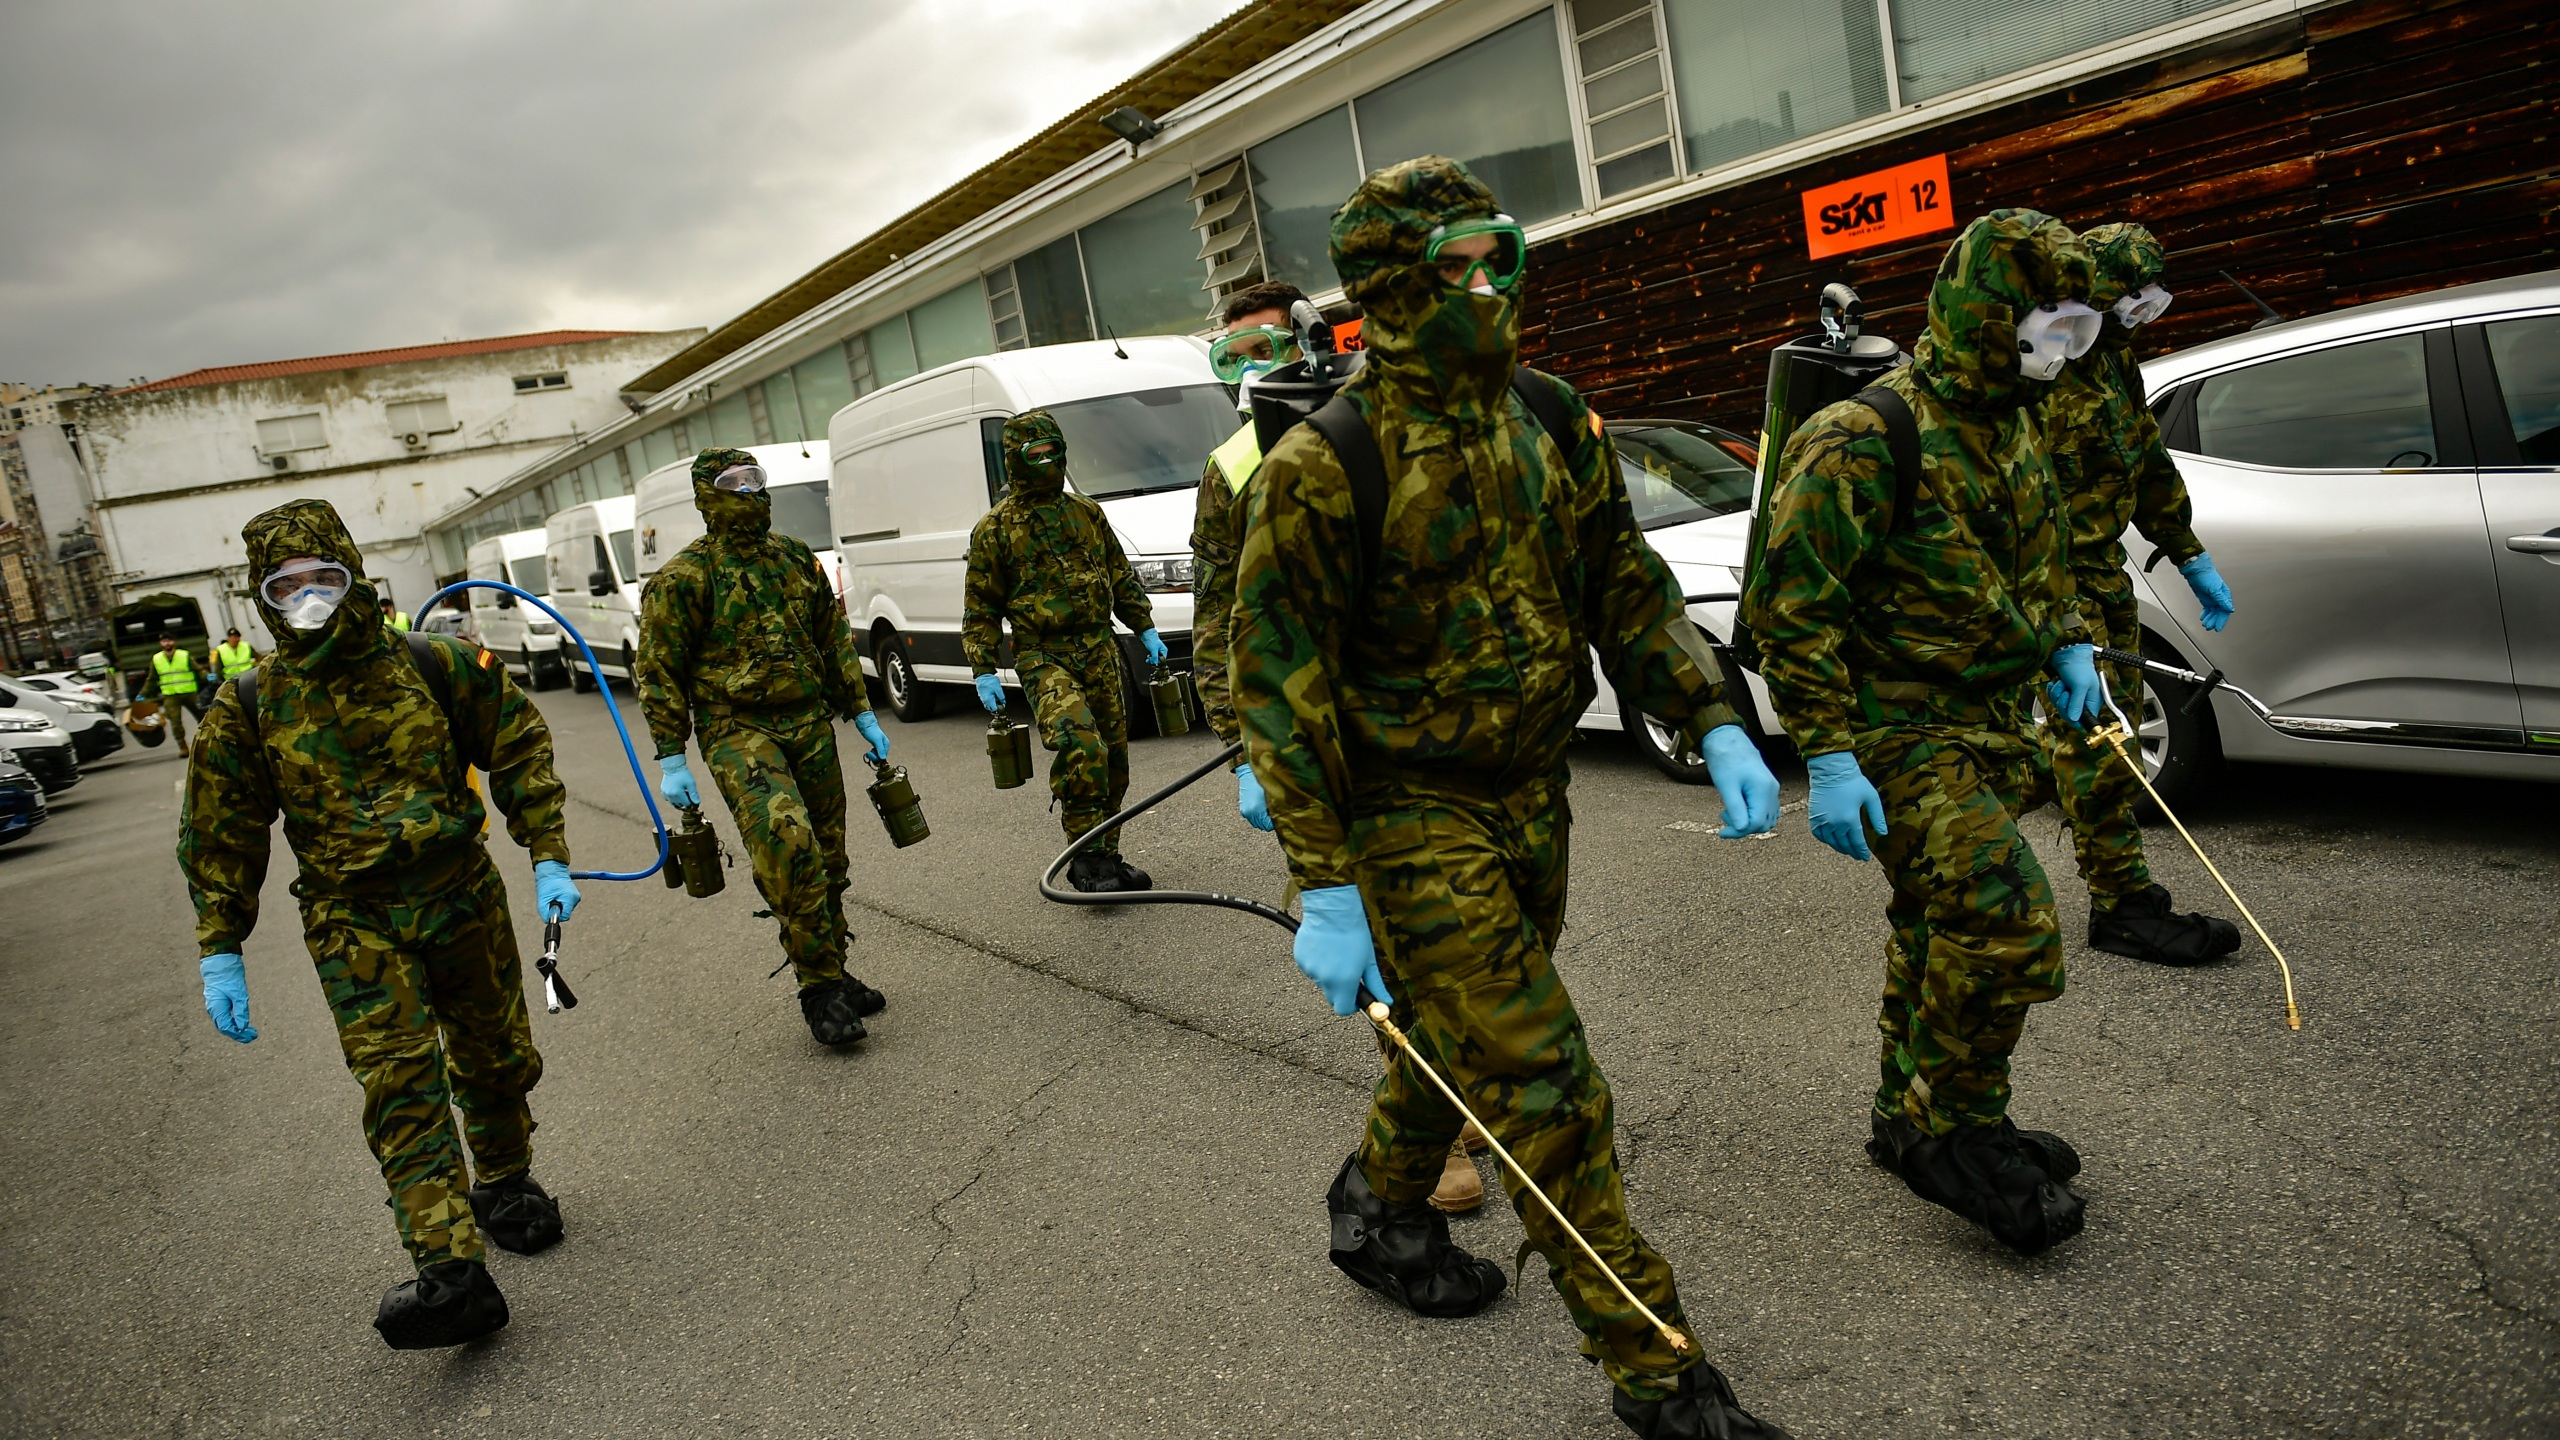 Spanish military members walk with special equipment to disinfect areas to prevent the spread of the coronavirus, arrive at Abando train station, in Bilbao, northern Spain, Monday, March 23, 2020. (AP Photo/Alvaro Barrientos)